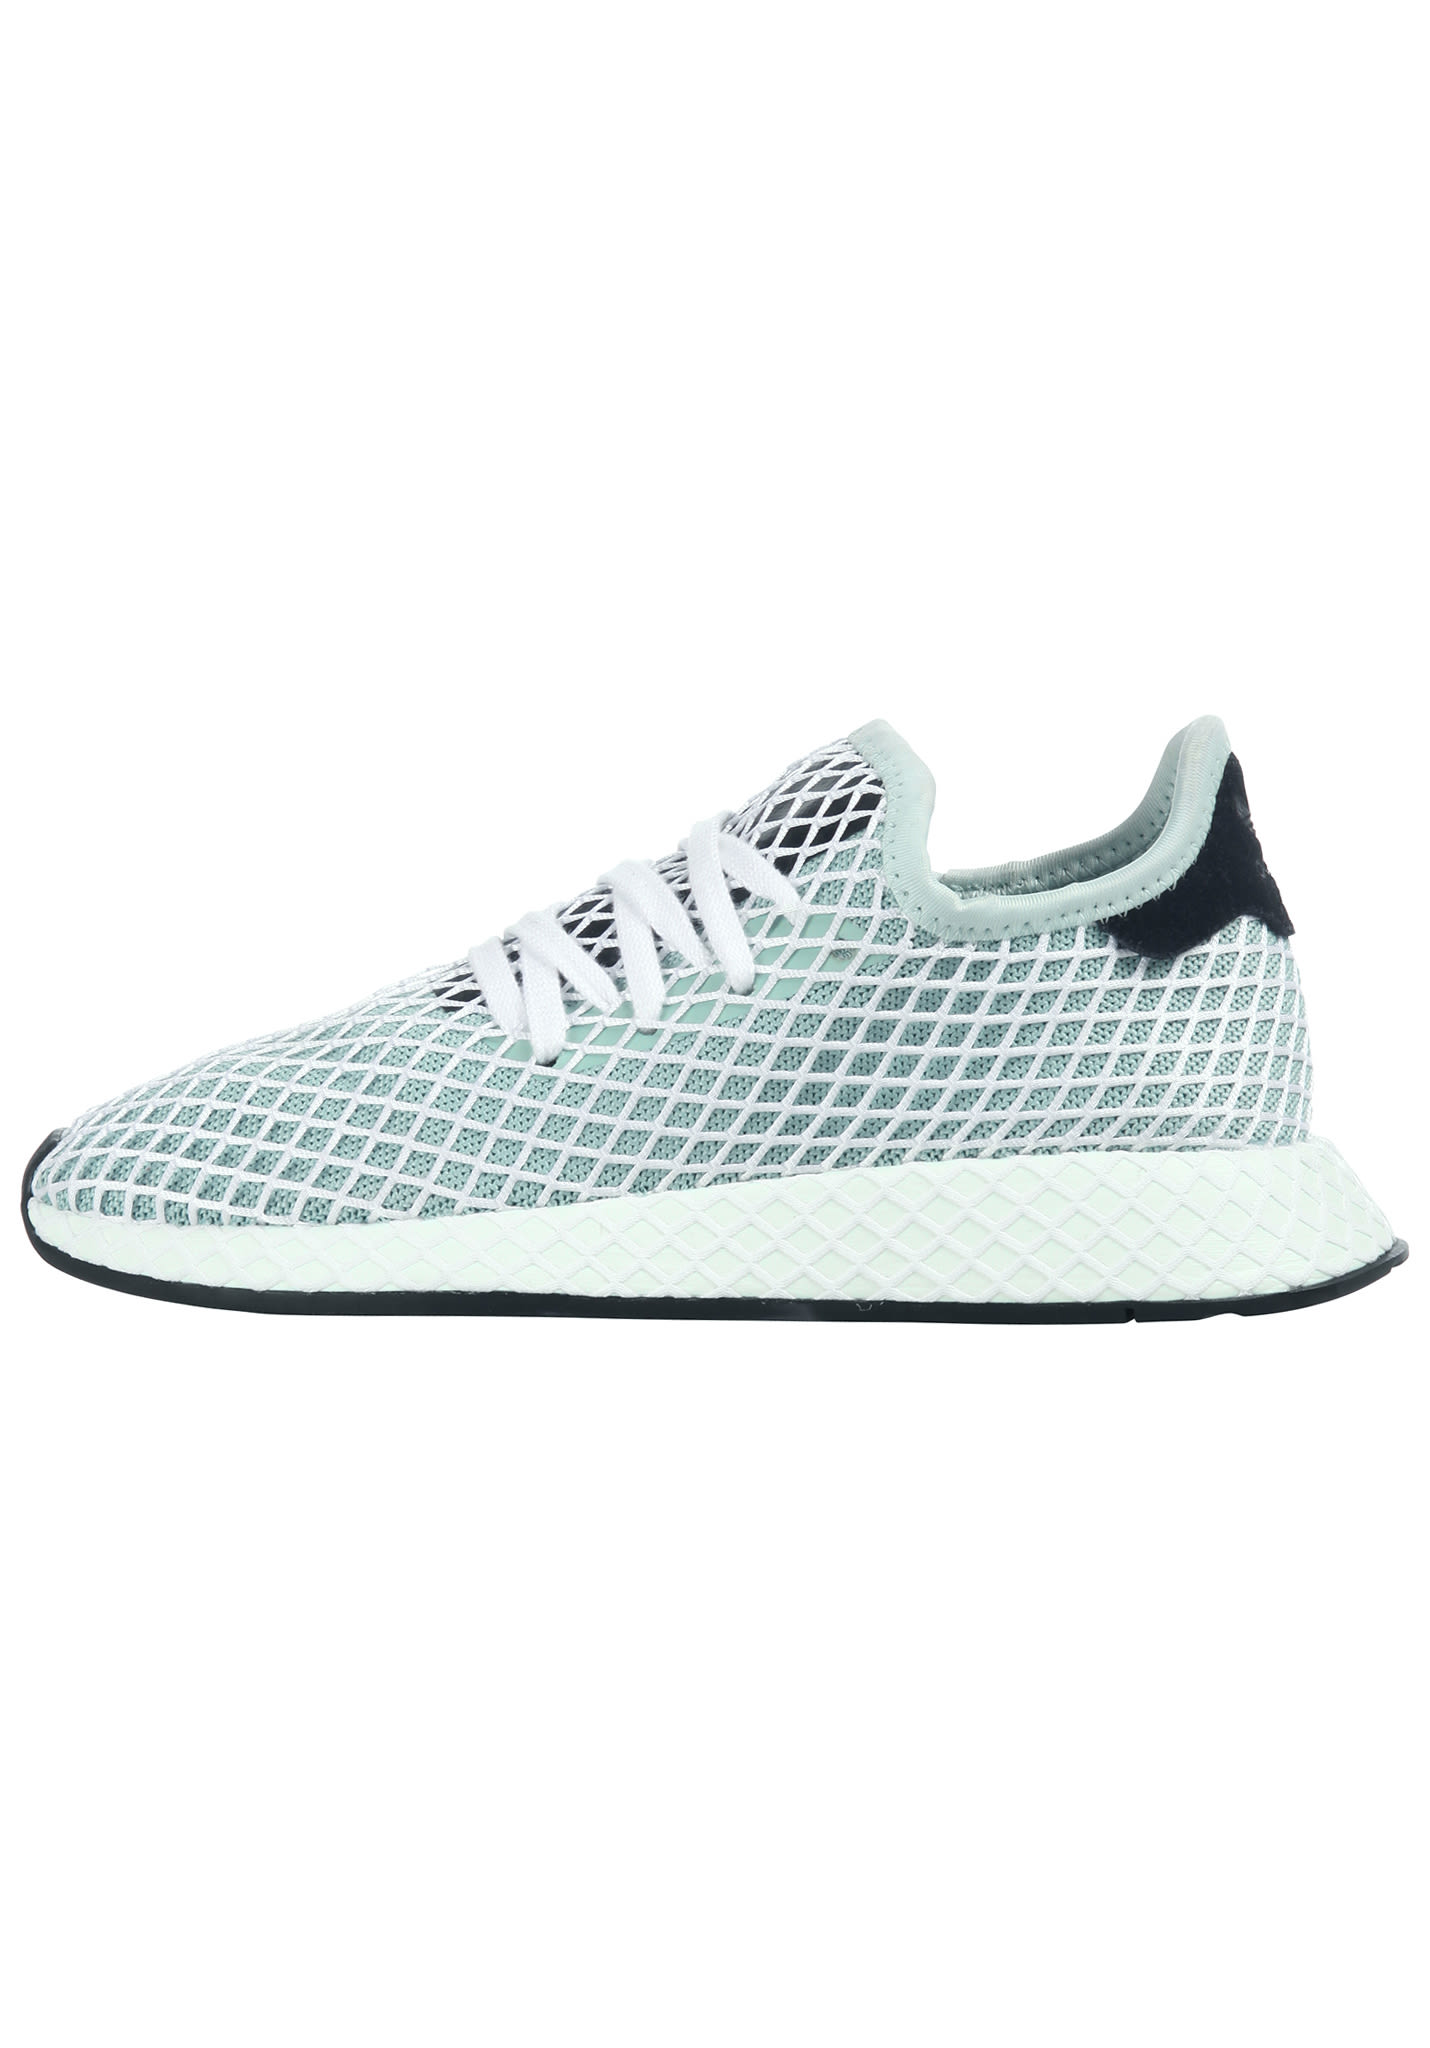 sports shoes ff583 9fc56 ADIDAS ORIGINALS Deerupt Runner - Sneakers for Women - Green